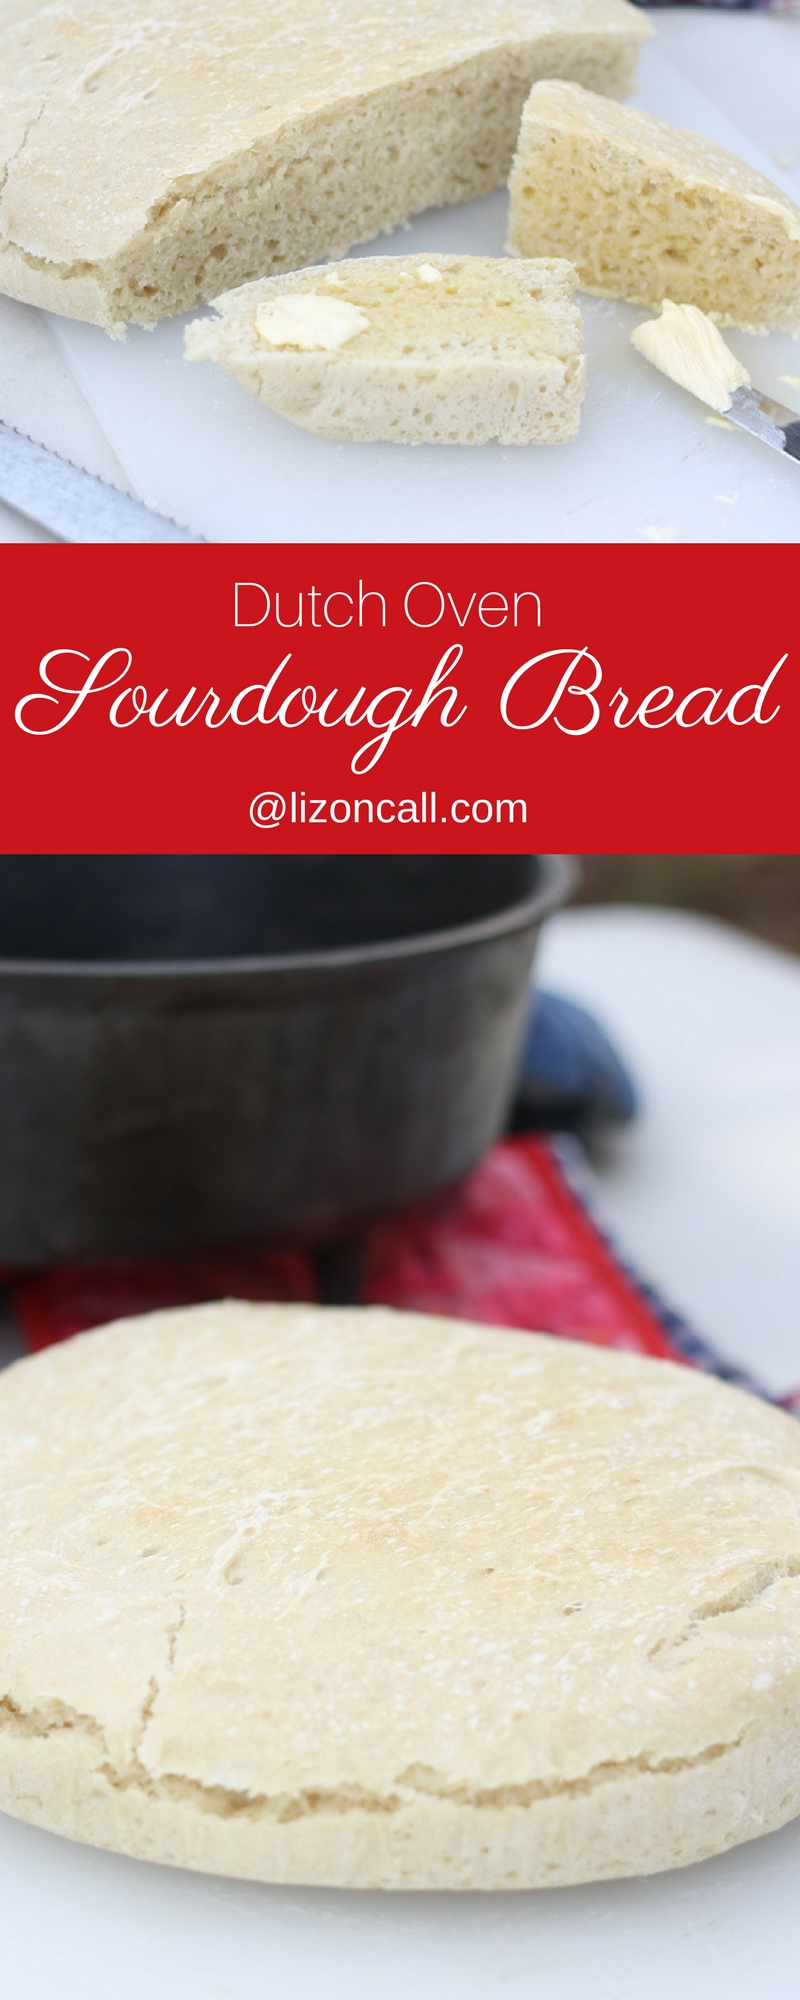 Dutch oven cooking has become one of our favorite family camping activities and this dutch oven sourdough bread is the one thing we always must make.